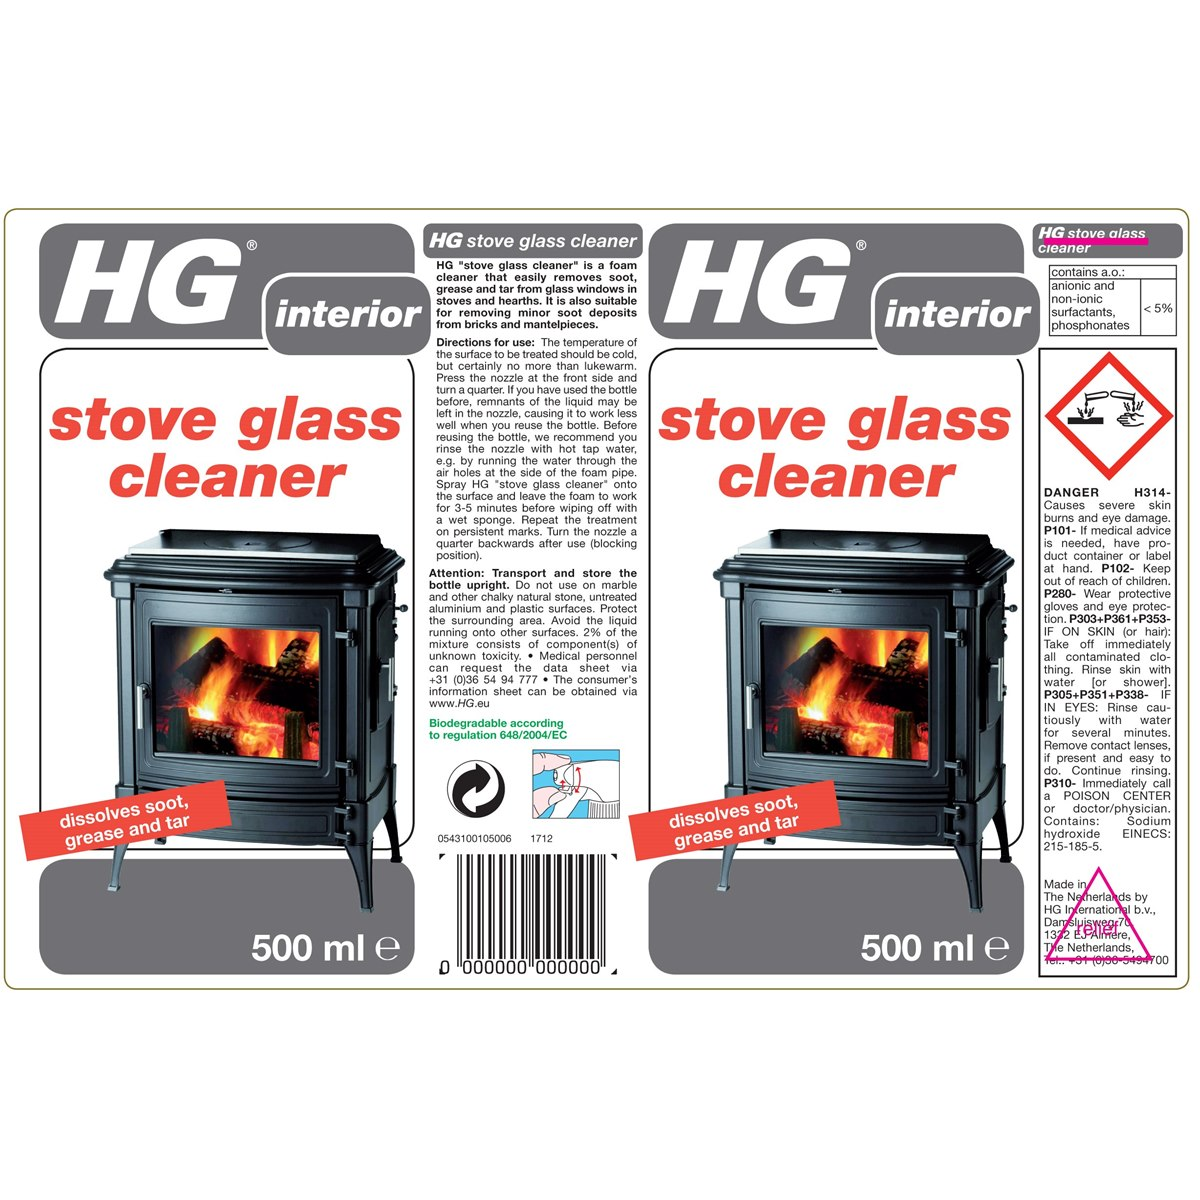 How to Use HG Stove Glass Cleaner